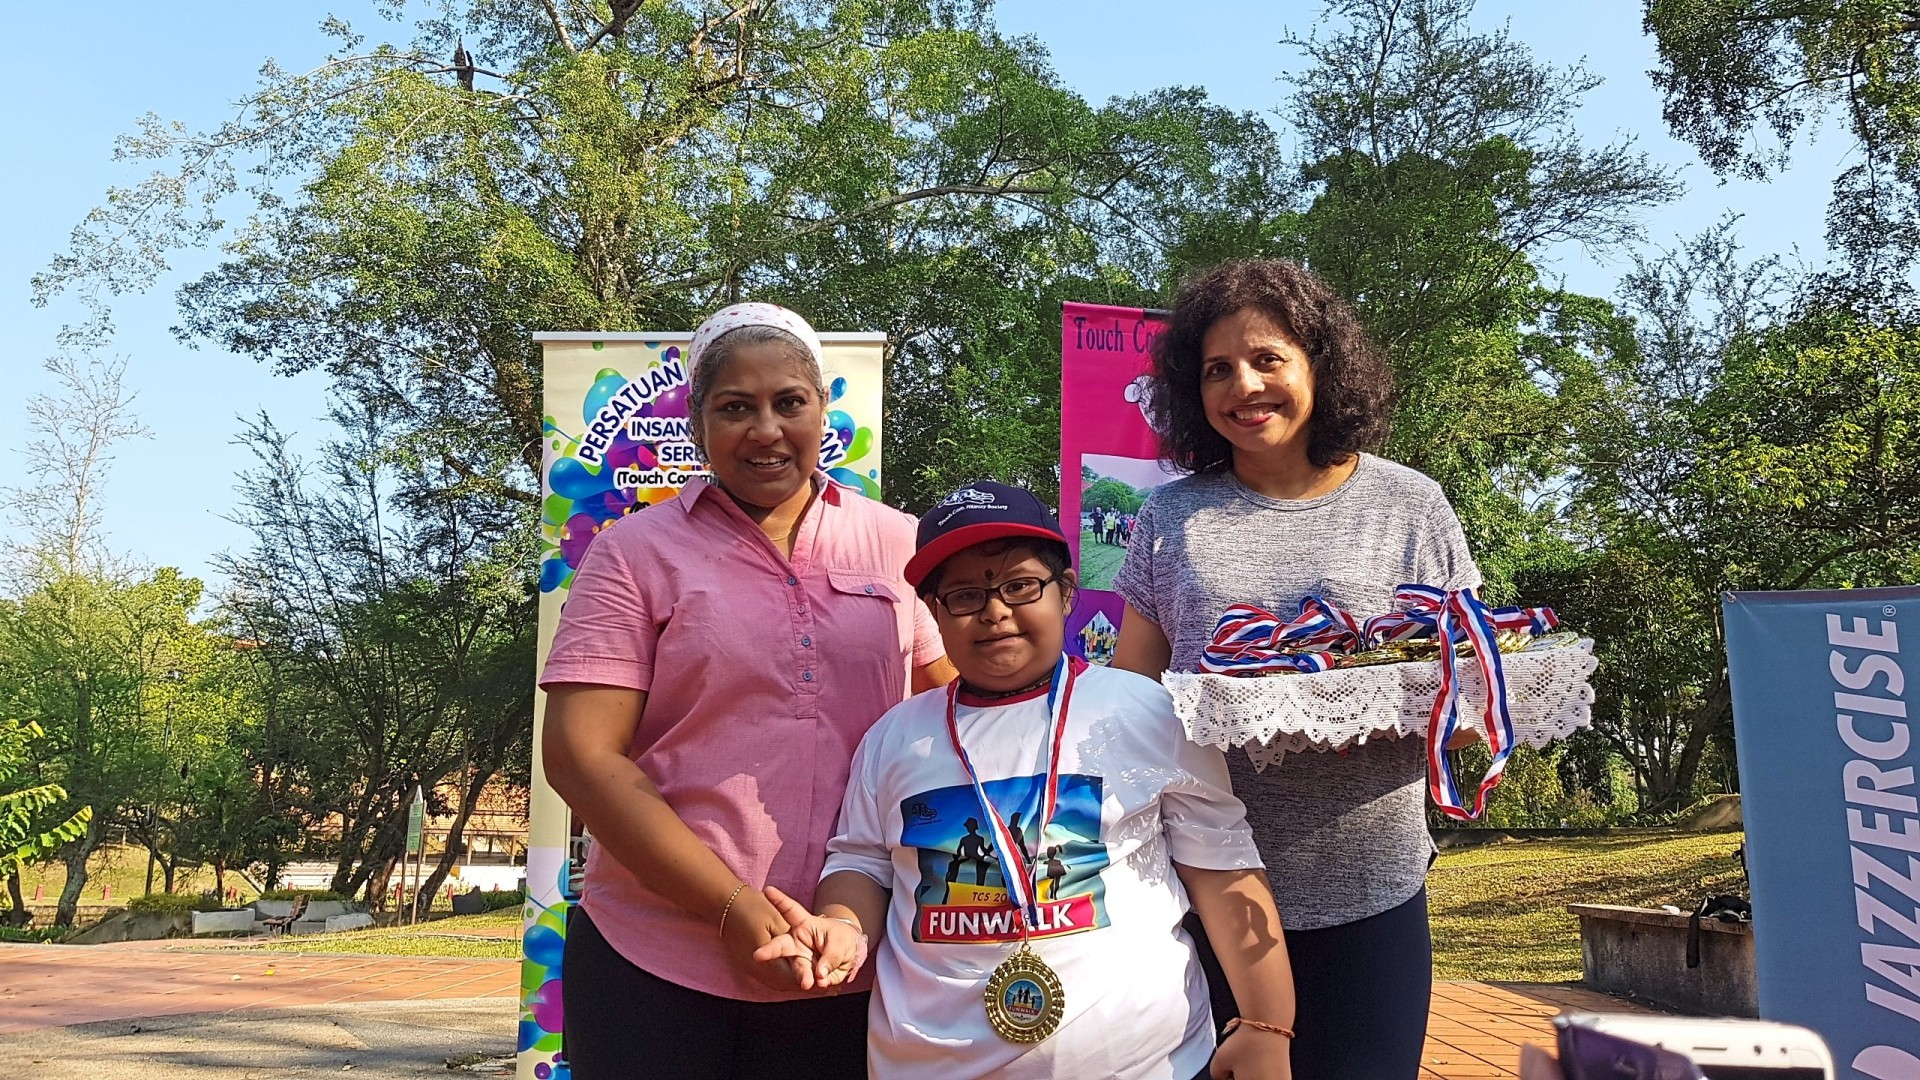 Janeve (centre) smiles after receiving her medal from Sunitha (left) and Dr Pushpa.